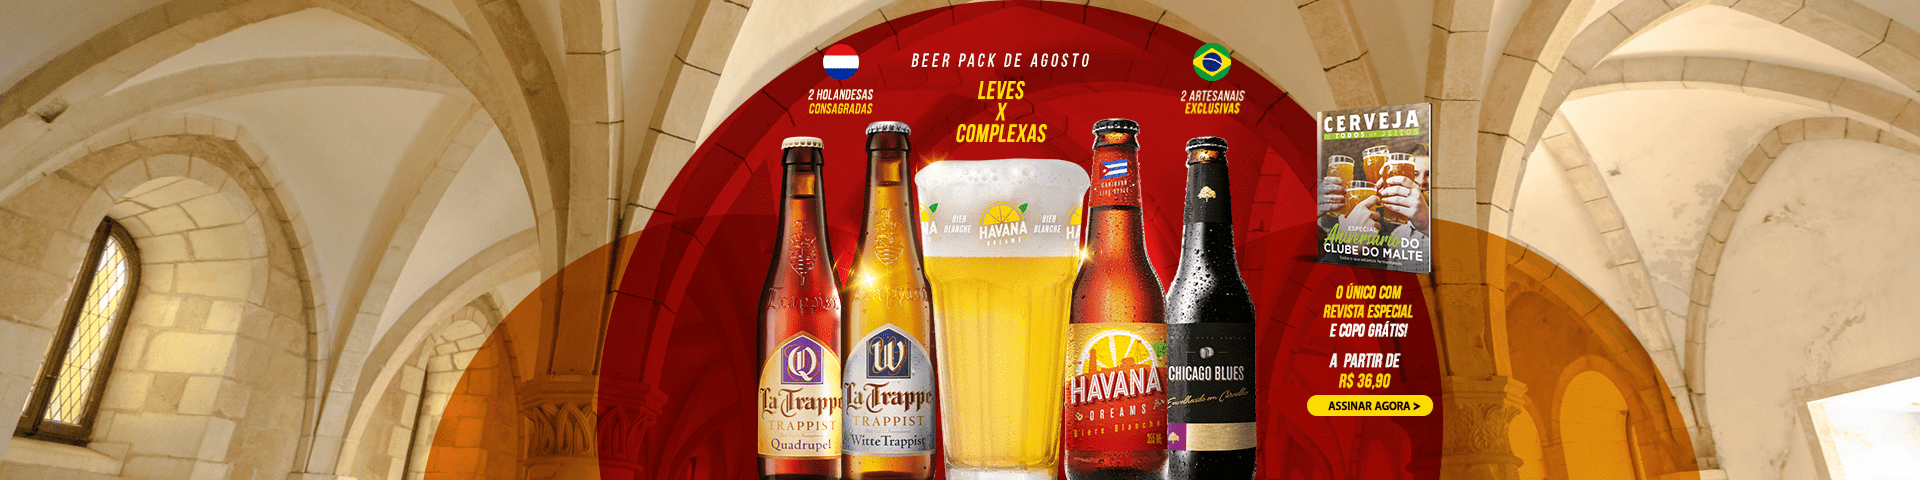 Beer Pack - Agosto